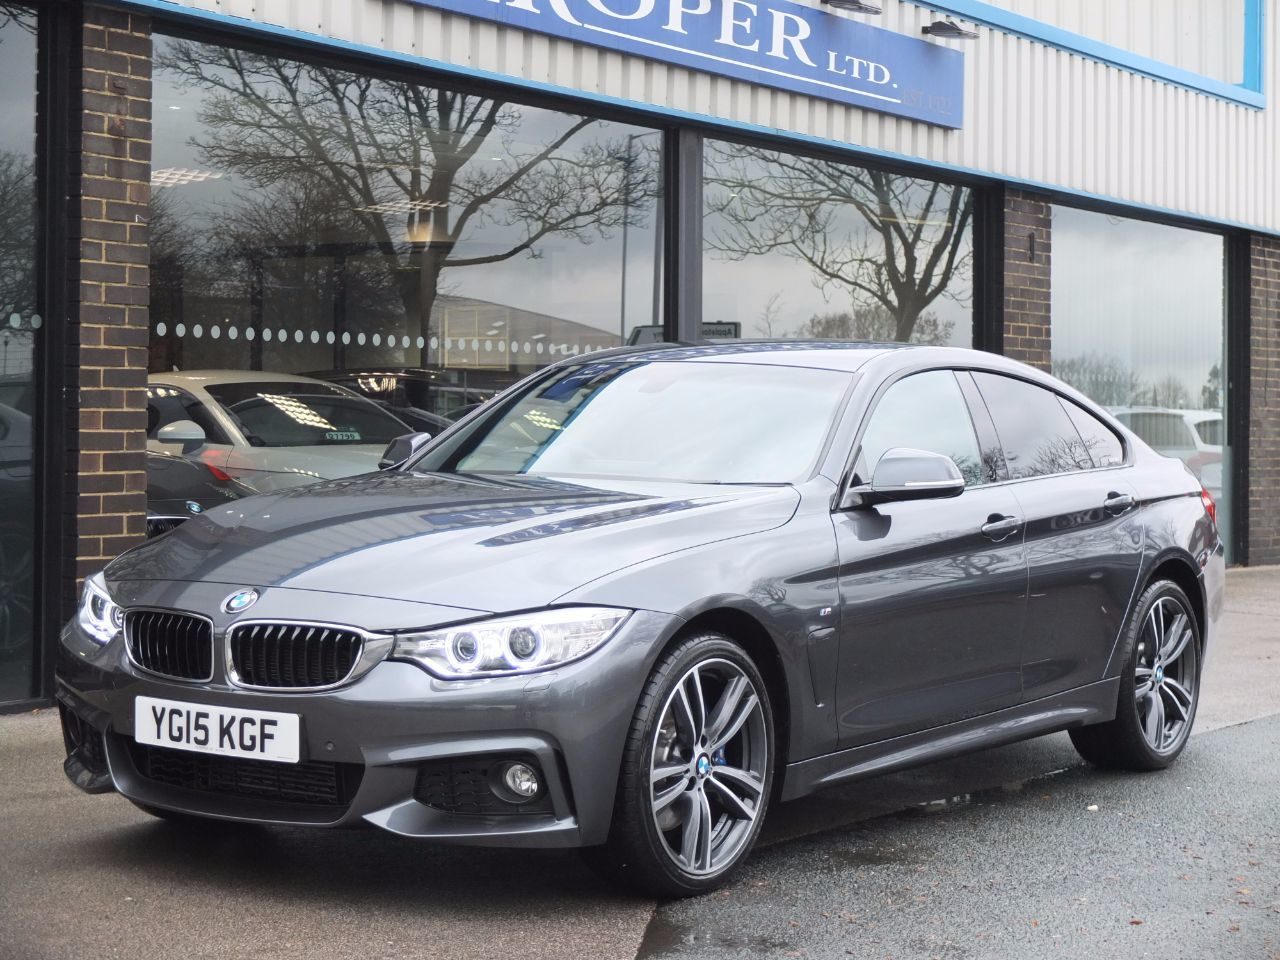 BMW 4 Series 2.0 Gran Coupe 420d xDrive M Sport Auto (M Sport Plus and Media) Coupe Diesel Mineral Grey MetallicBMW 4 Series 2.0 Gran Coupe 420d xDrive M Sport Auto (M Sport Plus and Media) Coupe Diesel Mineral Grey Metallic at fa Roper Ltd Bradford